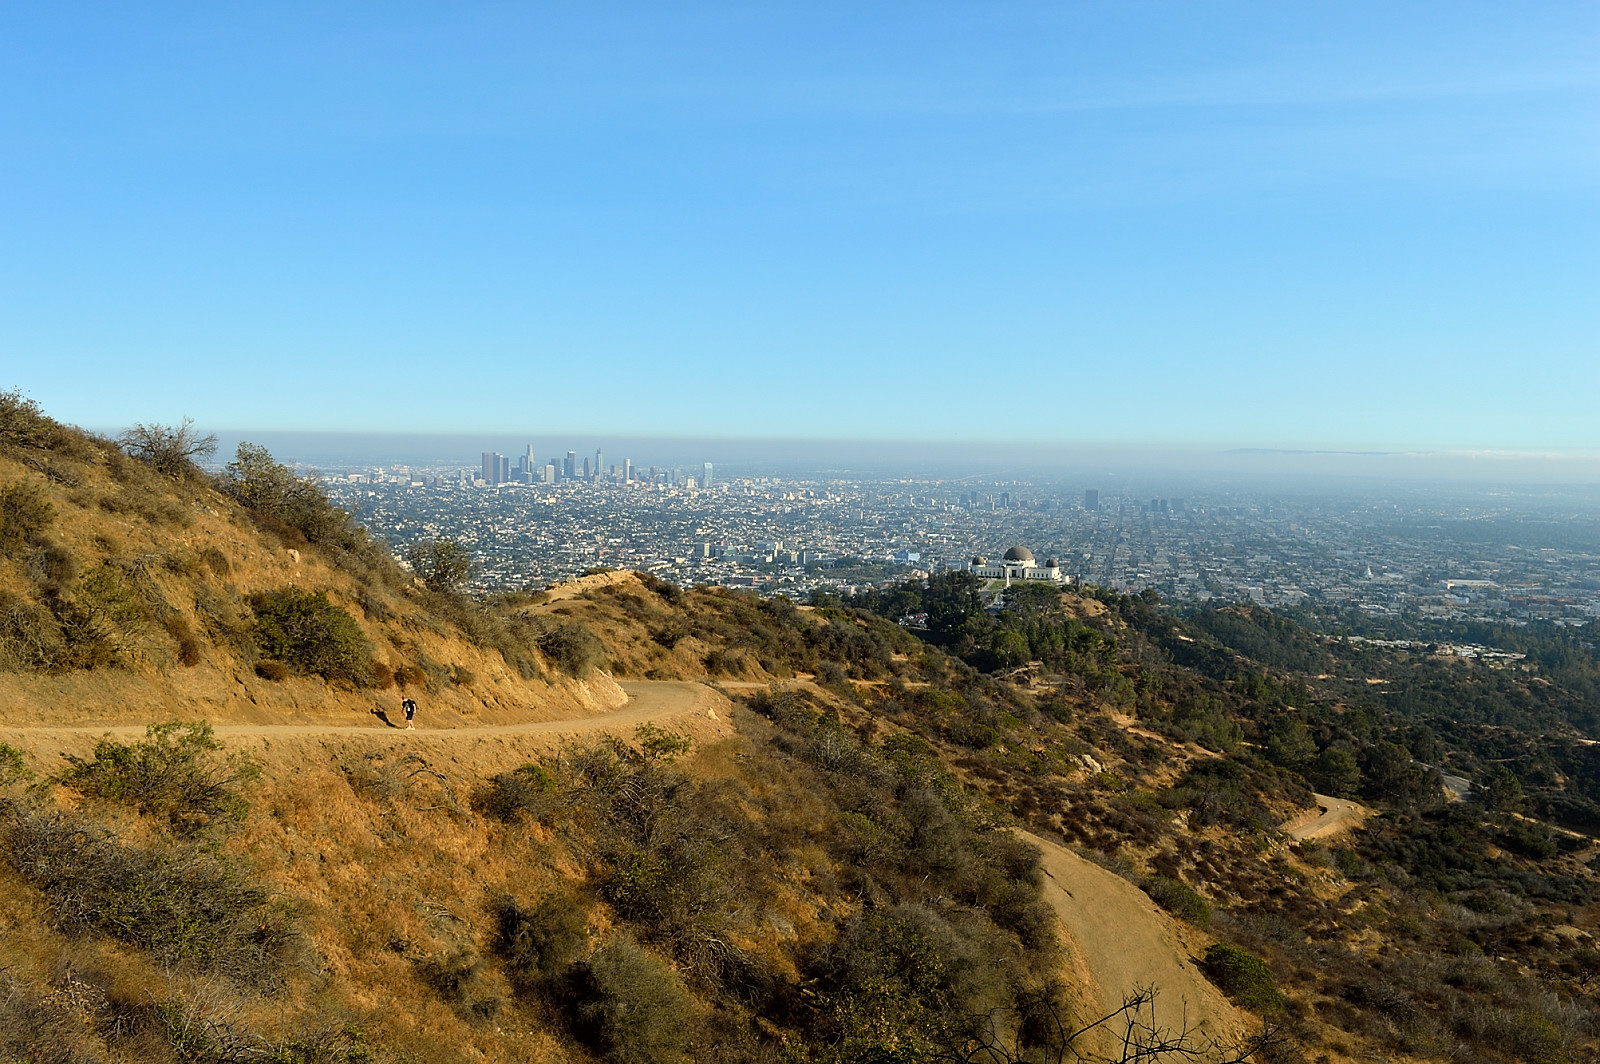 On our way to the Hollywood sign - a view at Los Angeles and Griffith Observatory